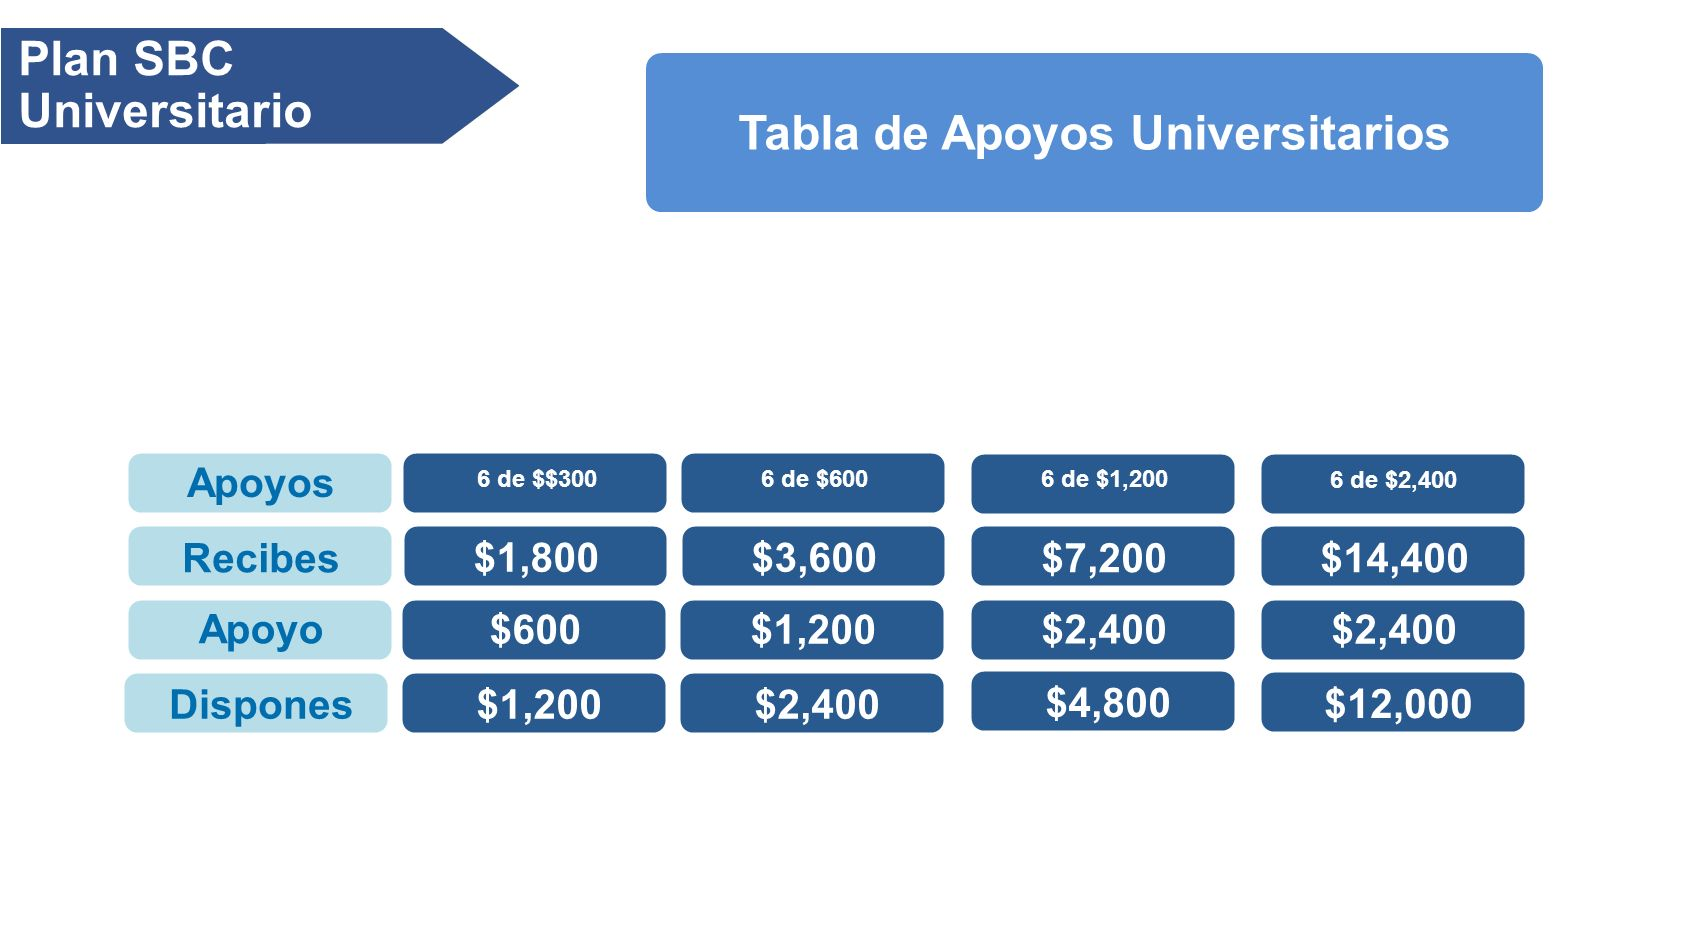 Plan SBC Universitario Apoyos Recibes Apoyo Dispones 6 de $2,400 $14,400 $2,400 $12,000 6 de $1,200 $7,200 $2,400 $4,800 6 de $600 $3,600 $1,200 $2,400 6 de $$300 $1,800 $600 $1,200 Tabla de Apoyos Universitarios